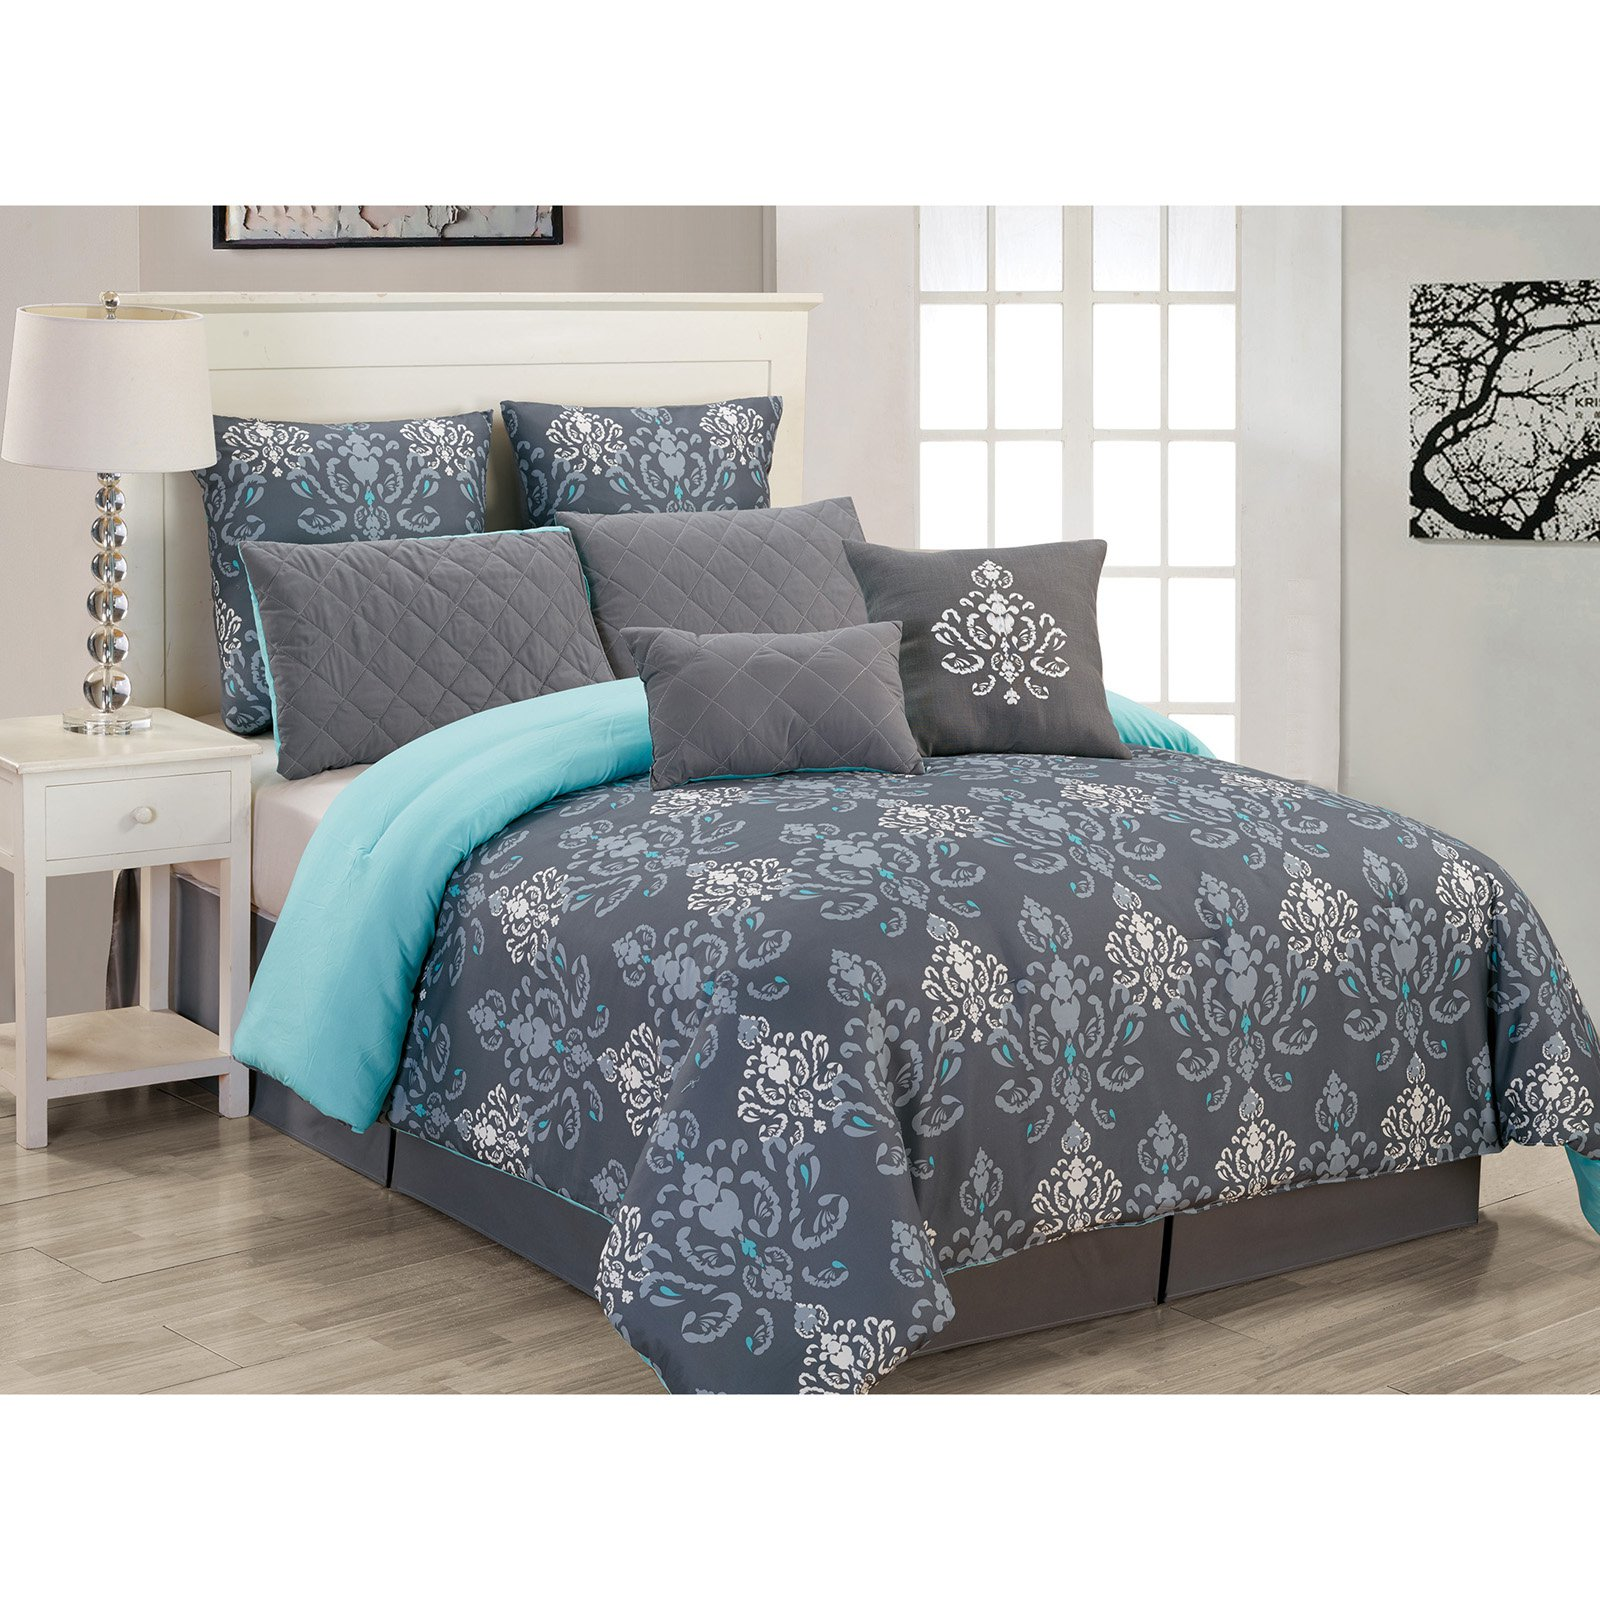 Lucienda 8 Piece Set Oversized/Over Filled Comforter Set by Duck River Textile